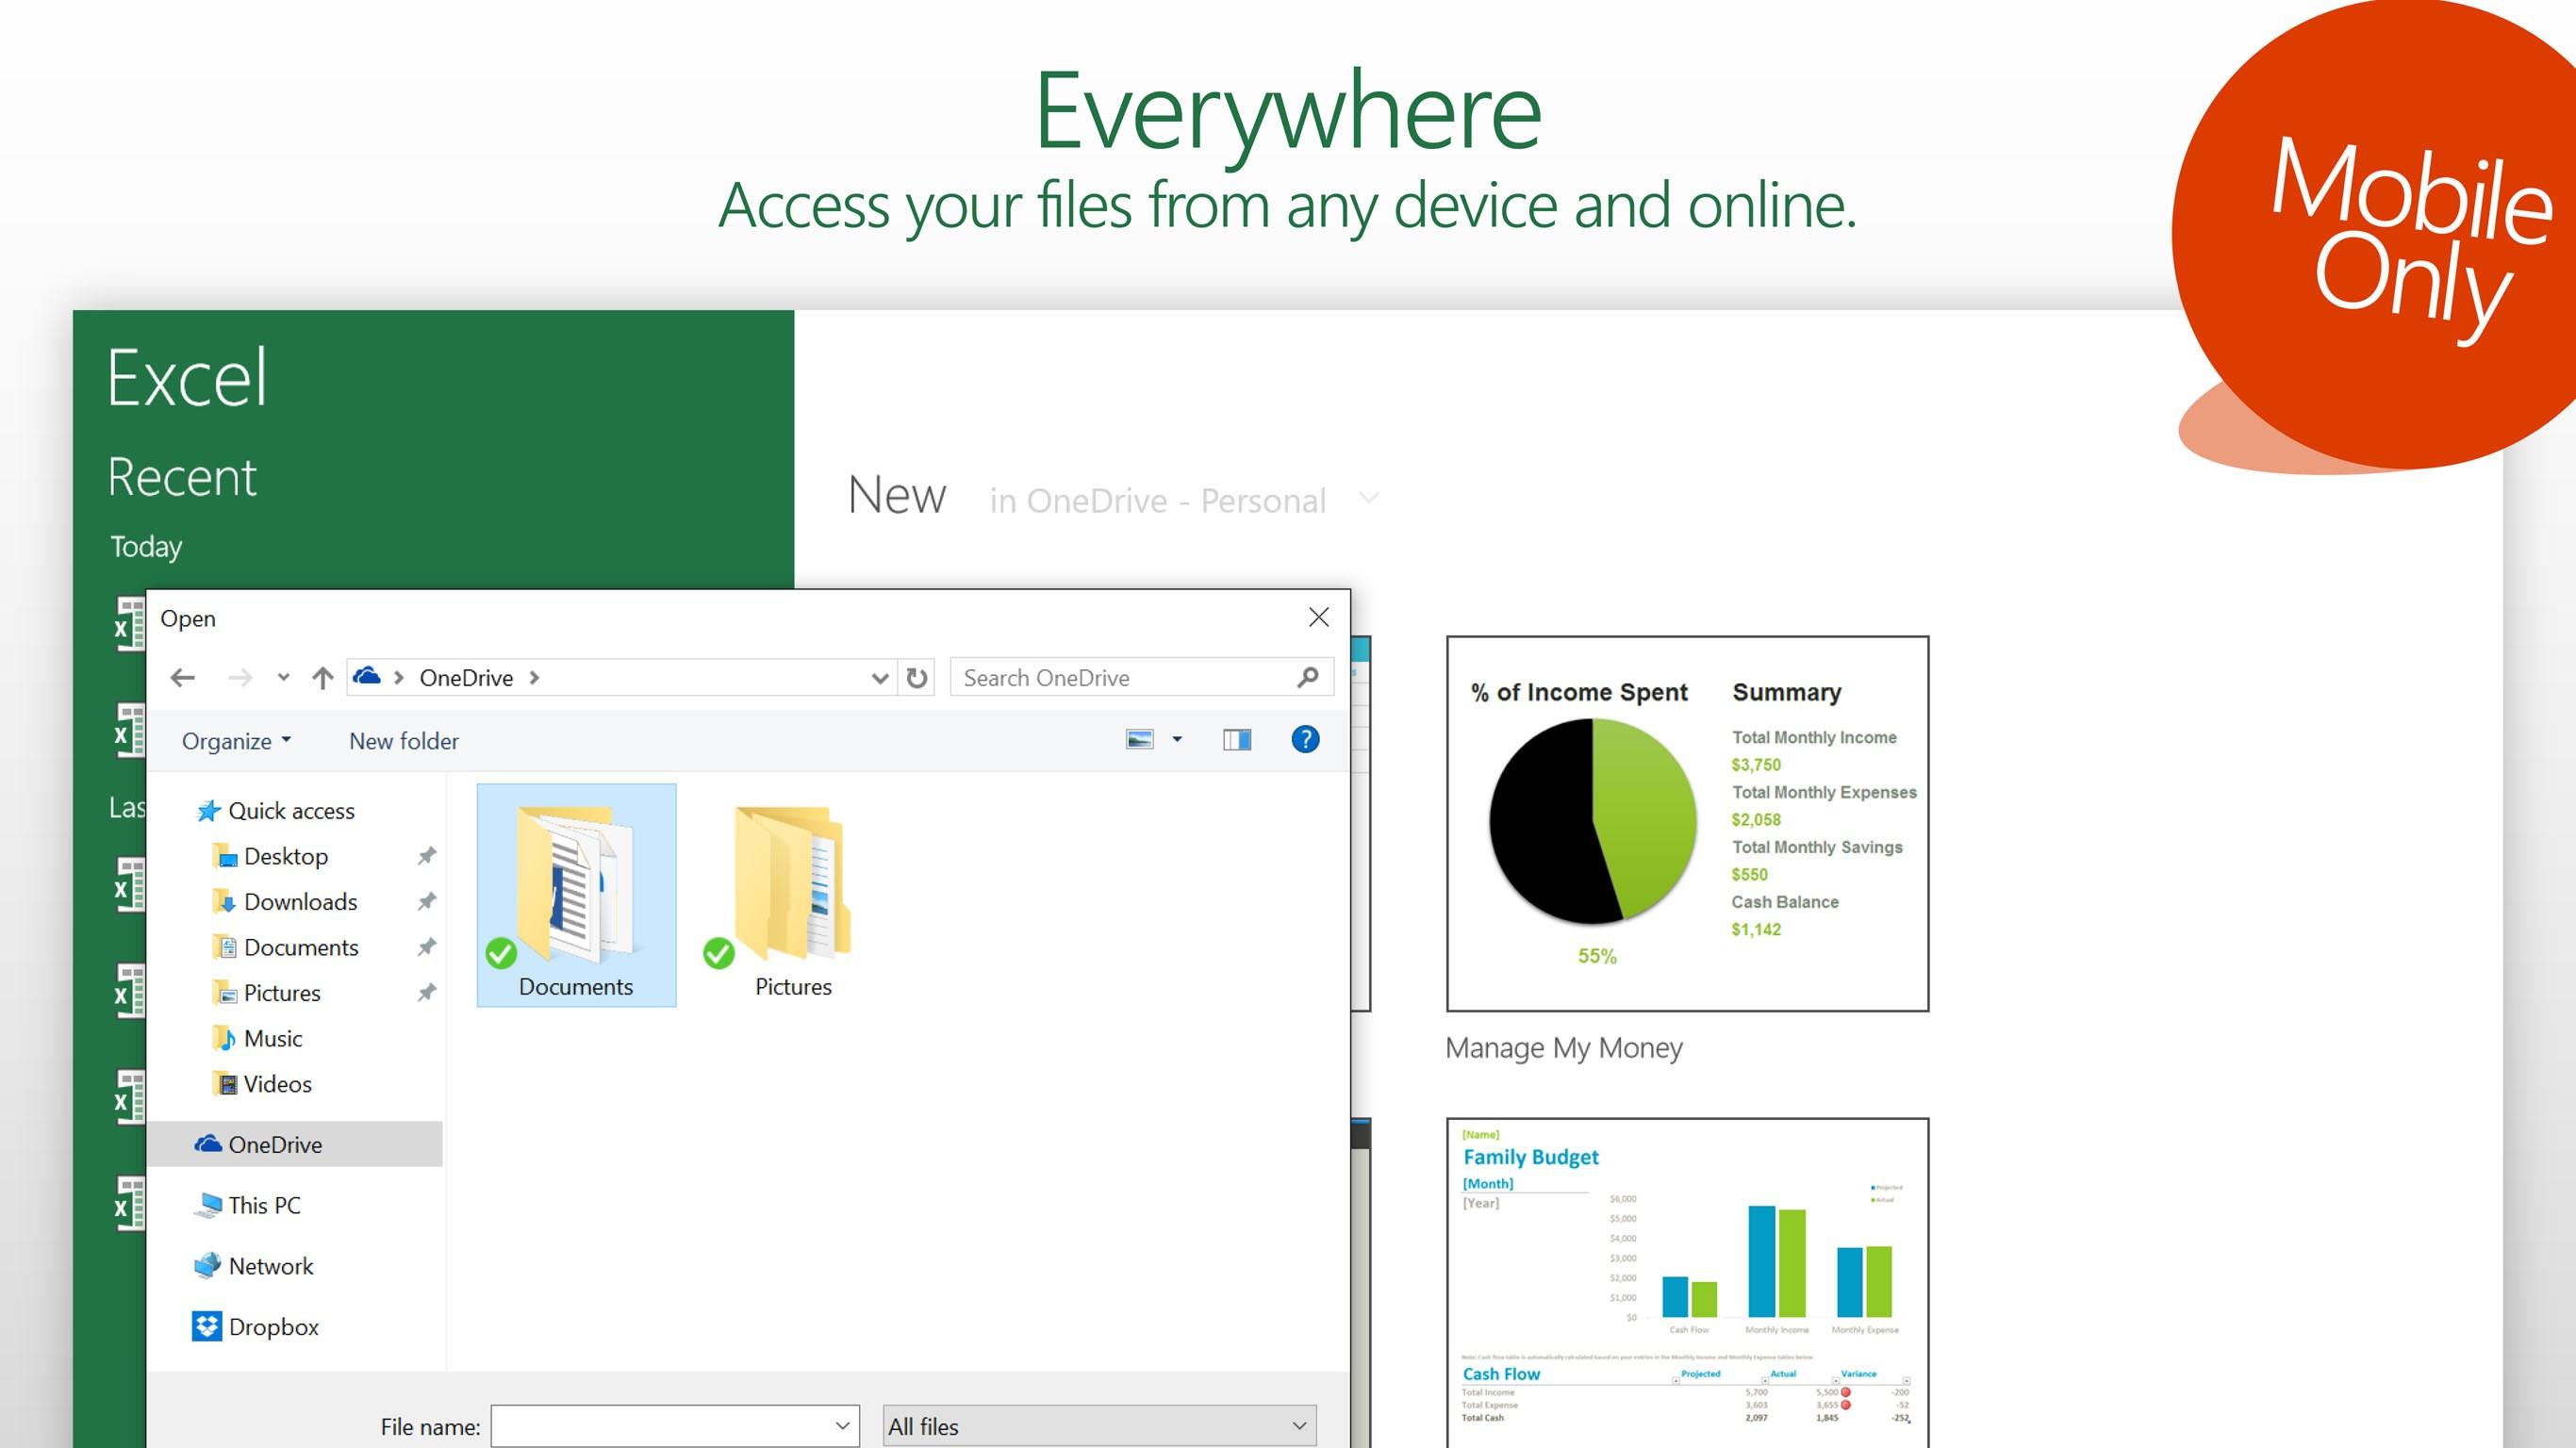 Excel Mobile